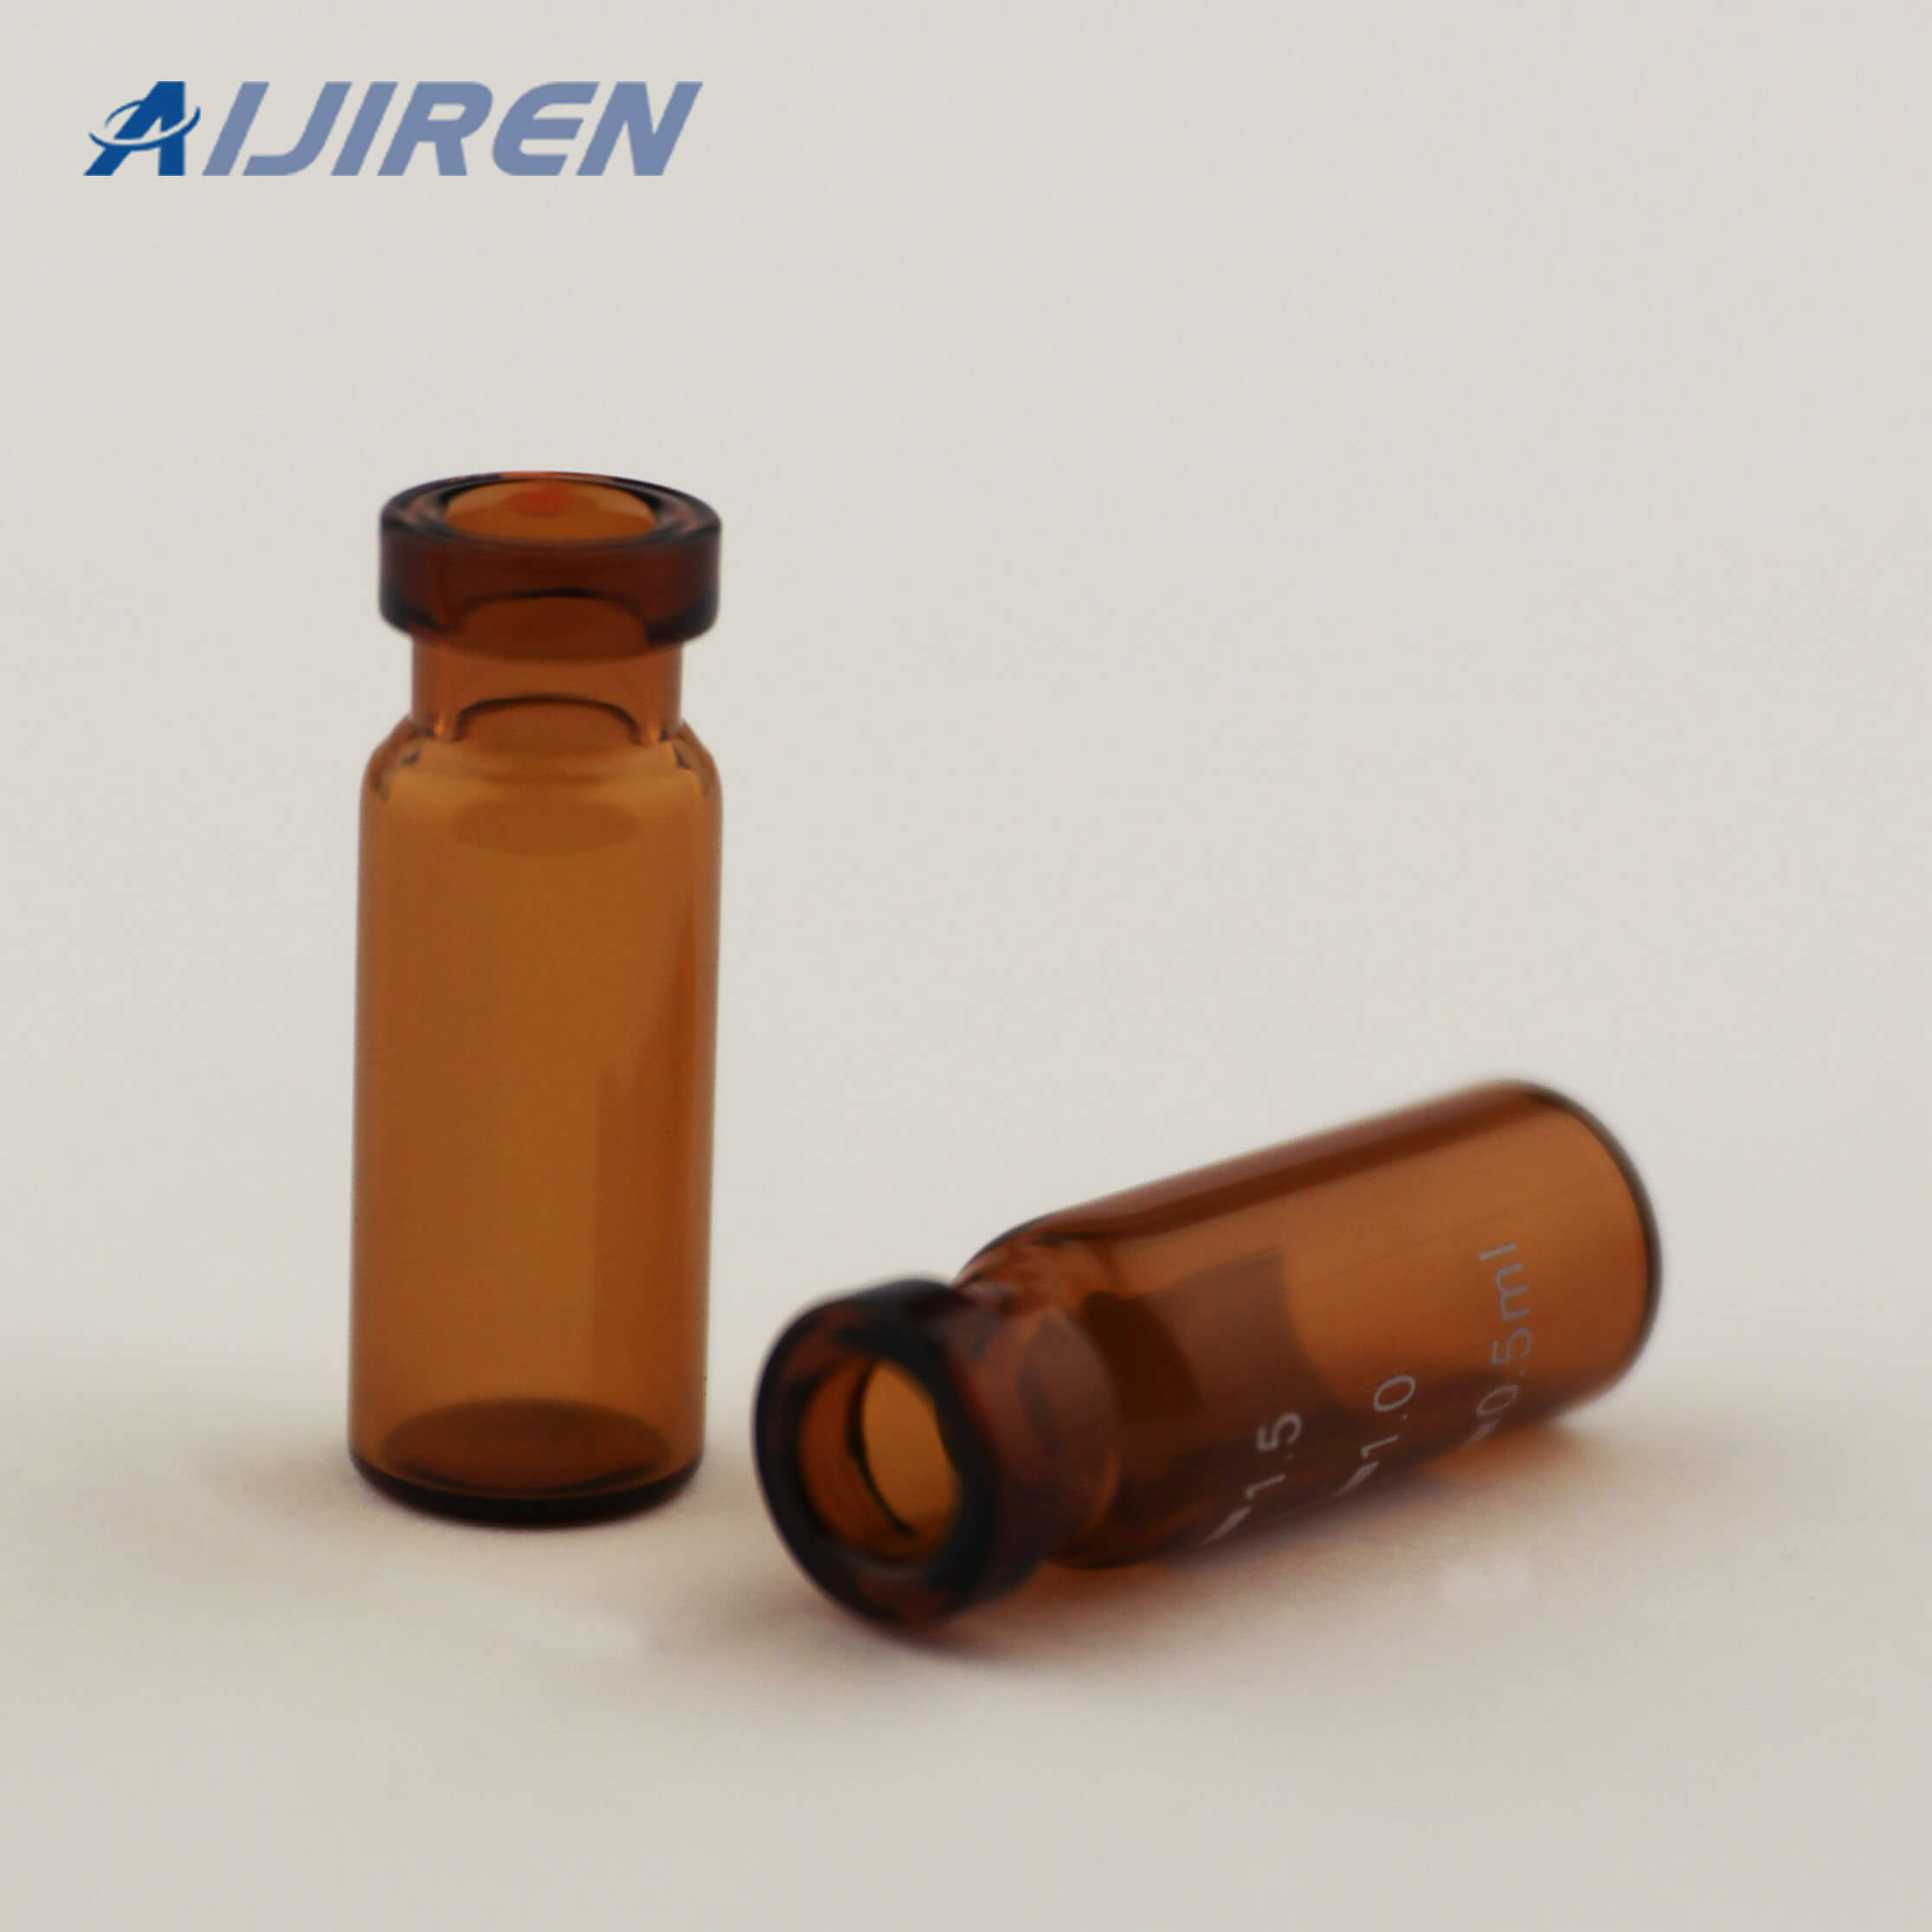 20ml headspace vialCrimp Top Glass Sample Vial for WATERS